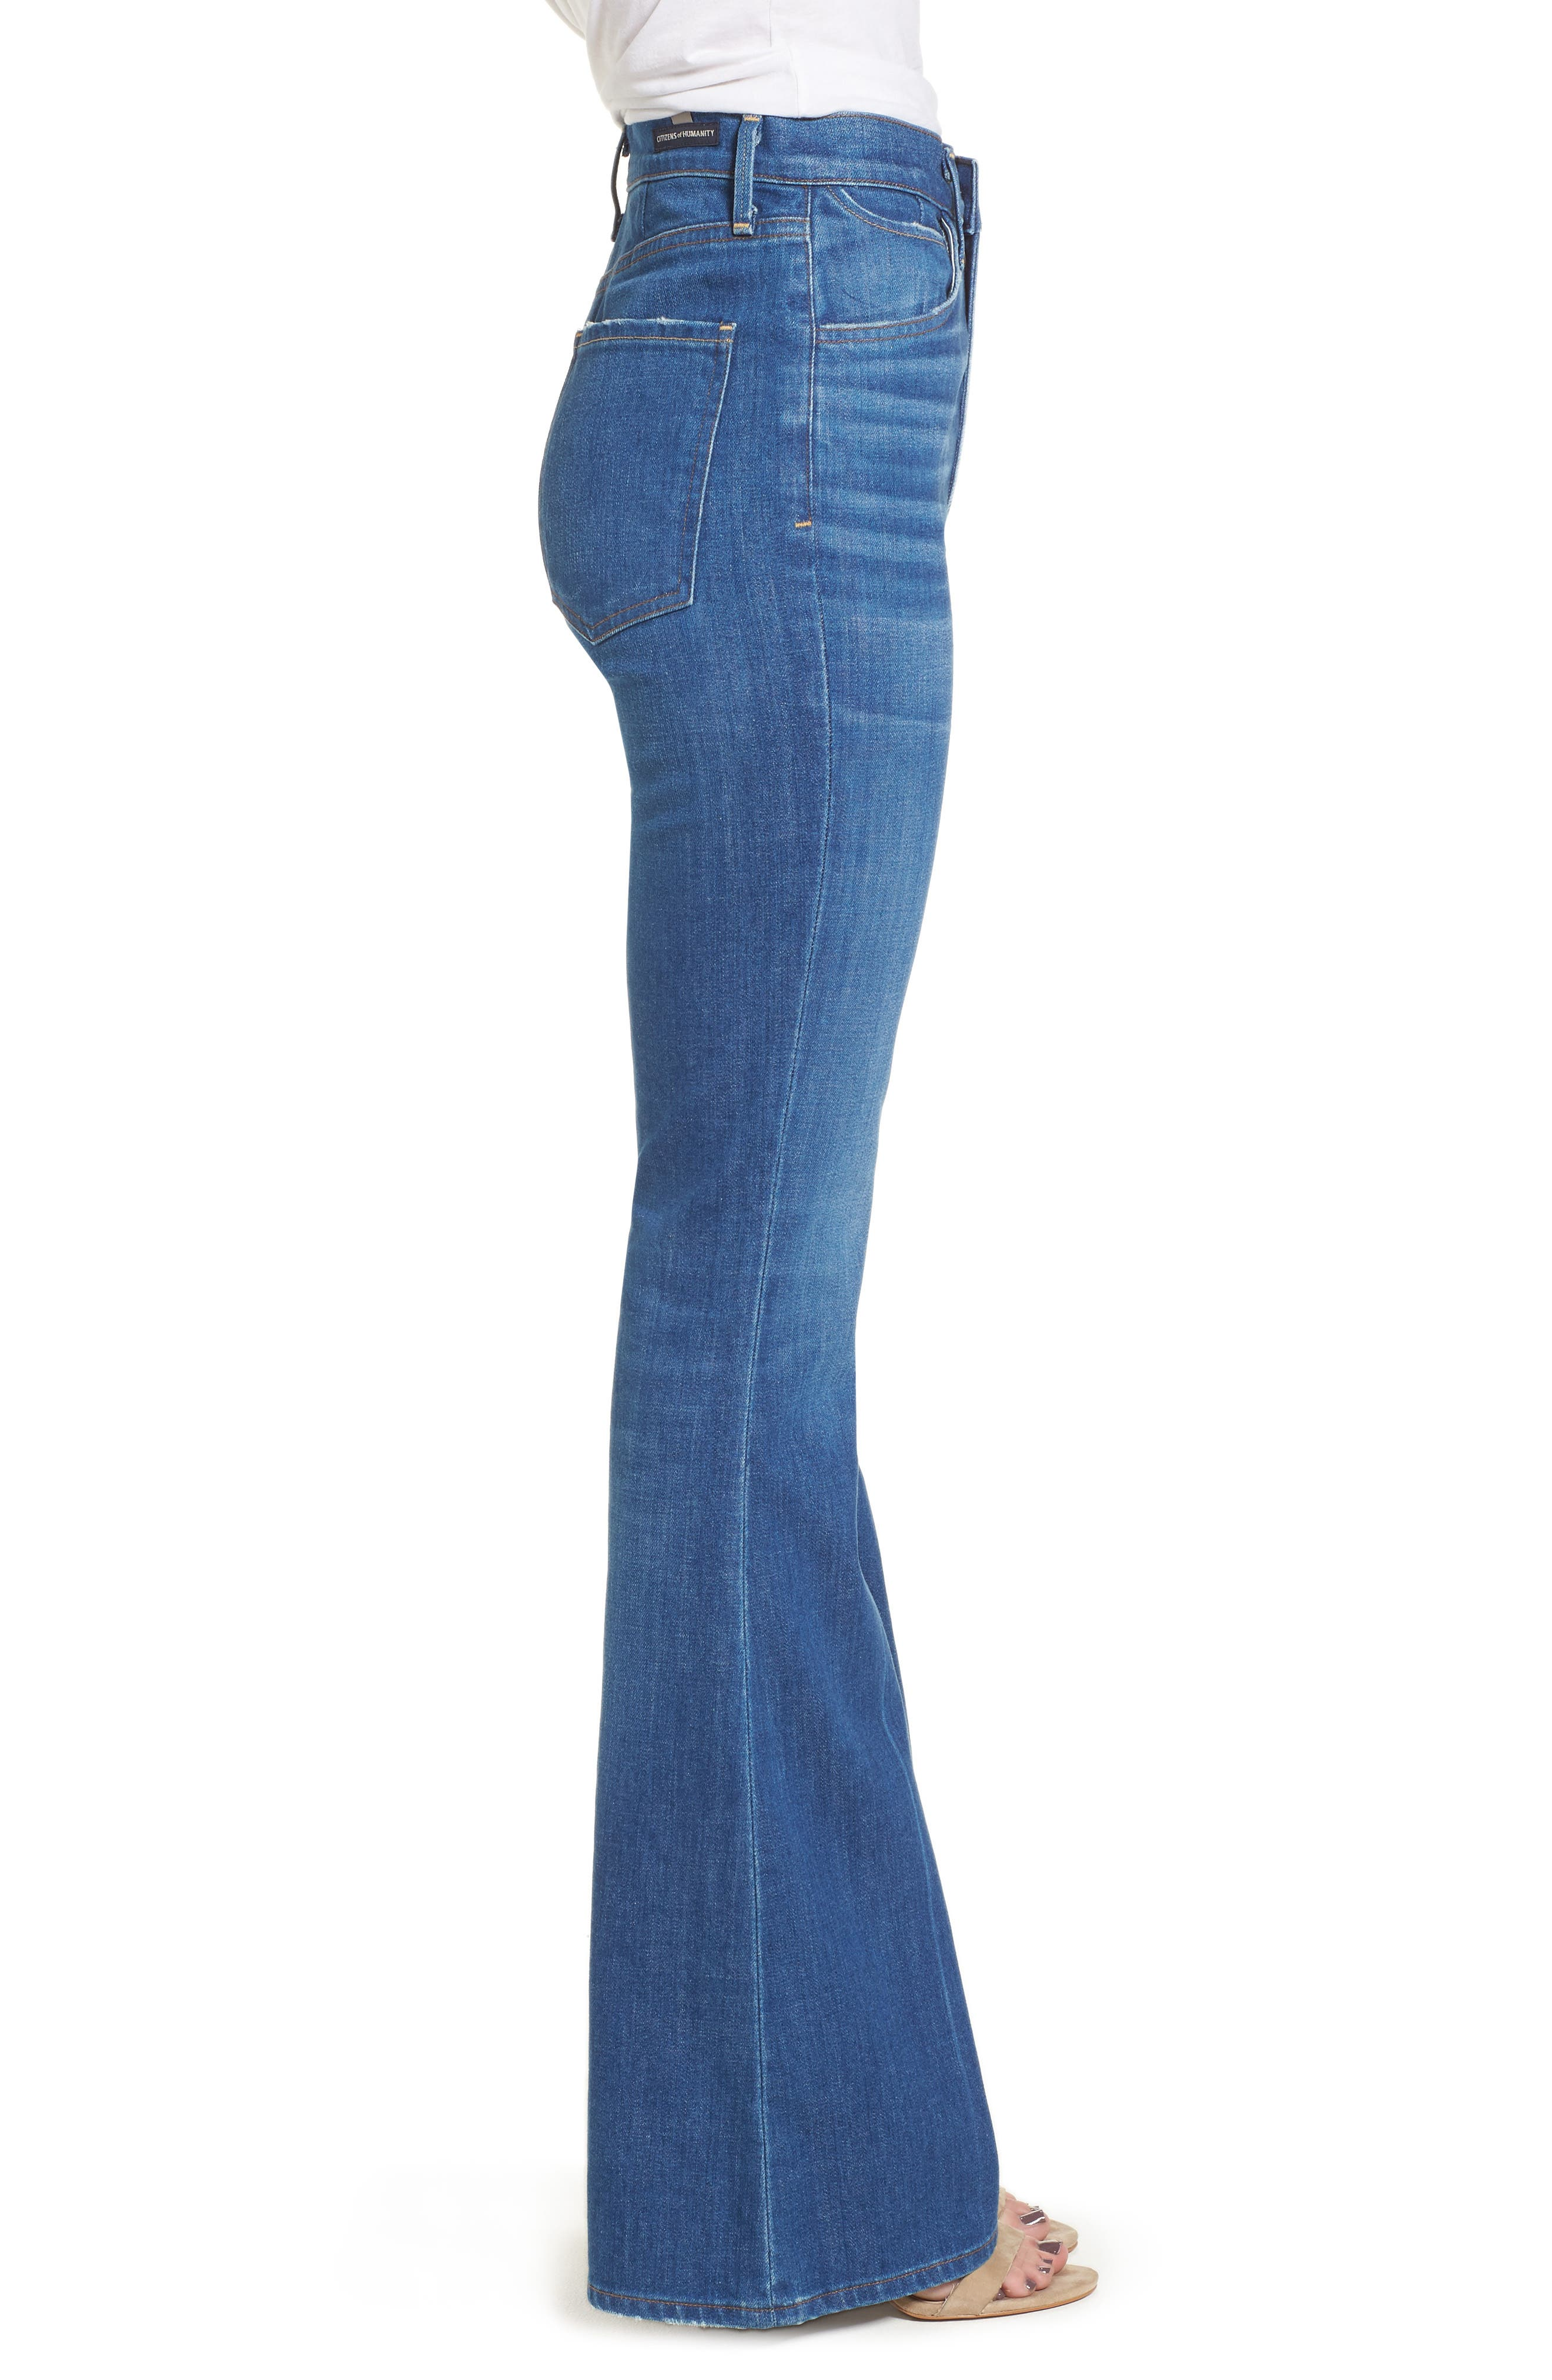 Cherie High Waist Bell Jeans,                             Alternate thumbnail 3, color,                             Frampton